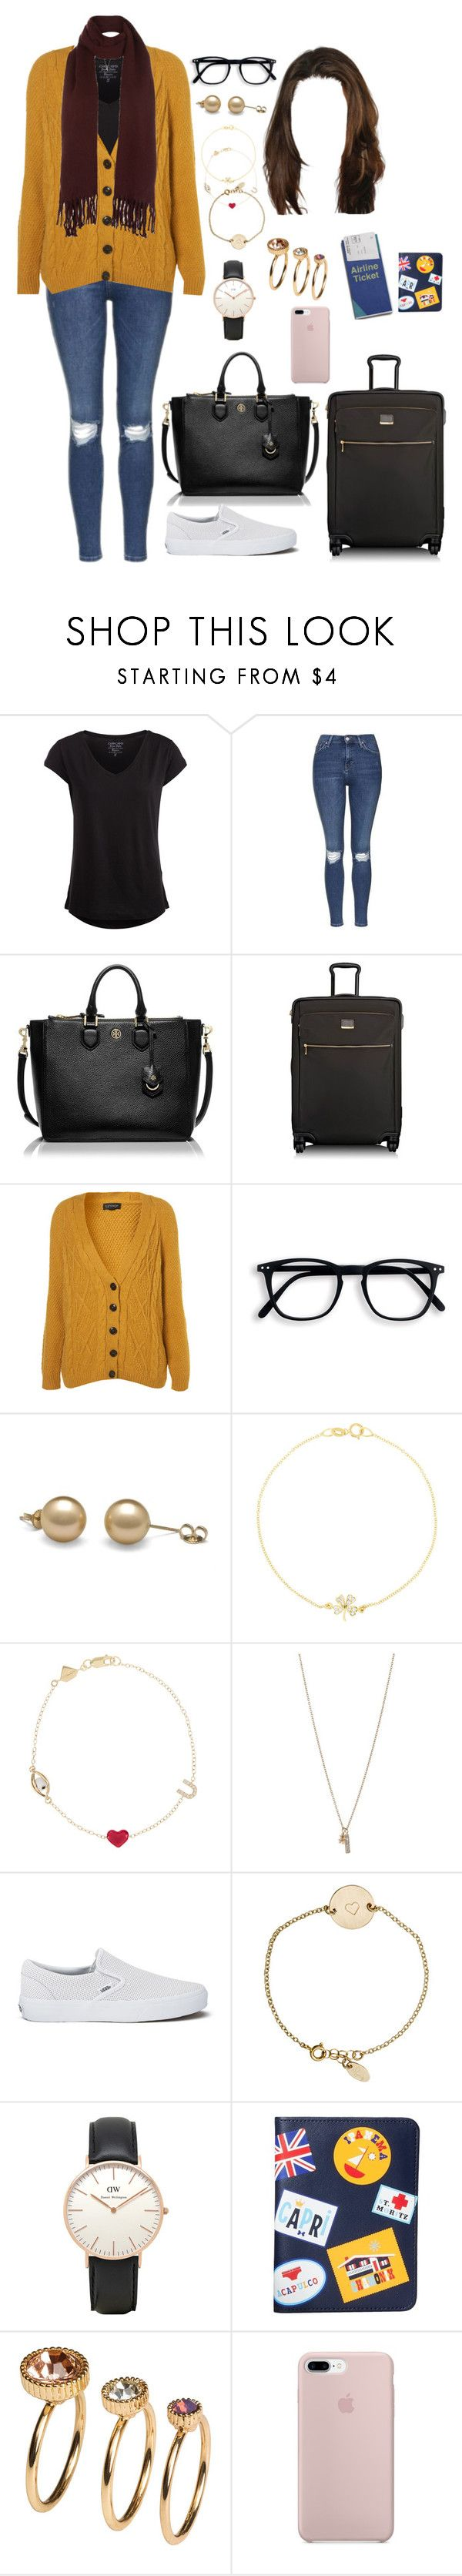 """AZE (flight to)"" by ittgirl ❤ liked on Polyvore featuring Pieces, Topshop, Tory Burch, Tumi, Jennifer Meyer Jewelry, Alison Lou, Minor Obsessions, Vans, Nashelle and Jonathan Adler"